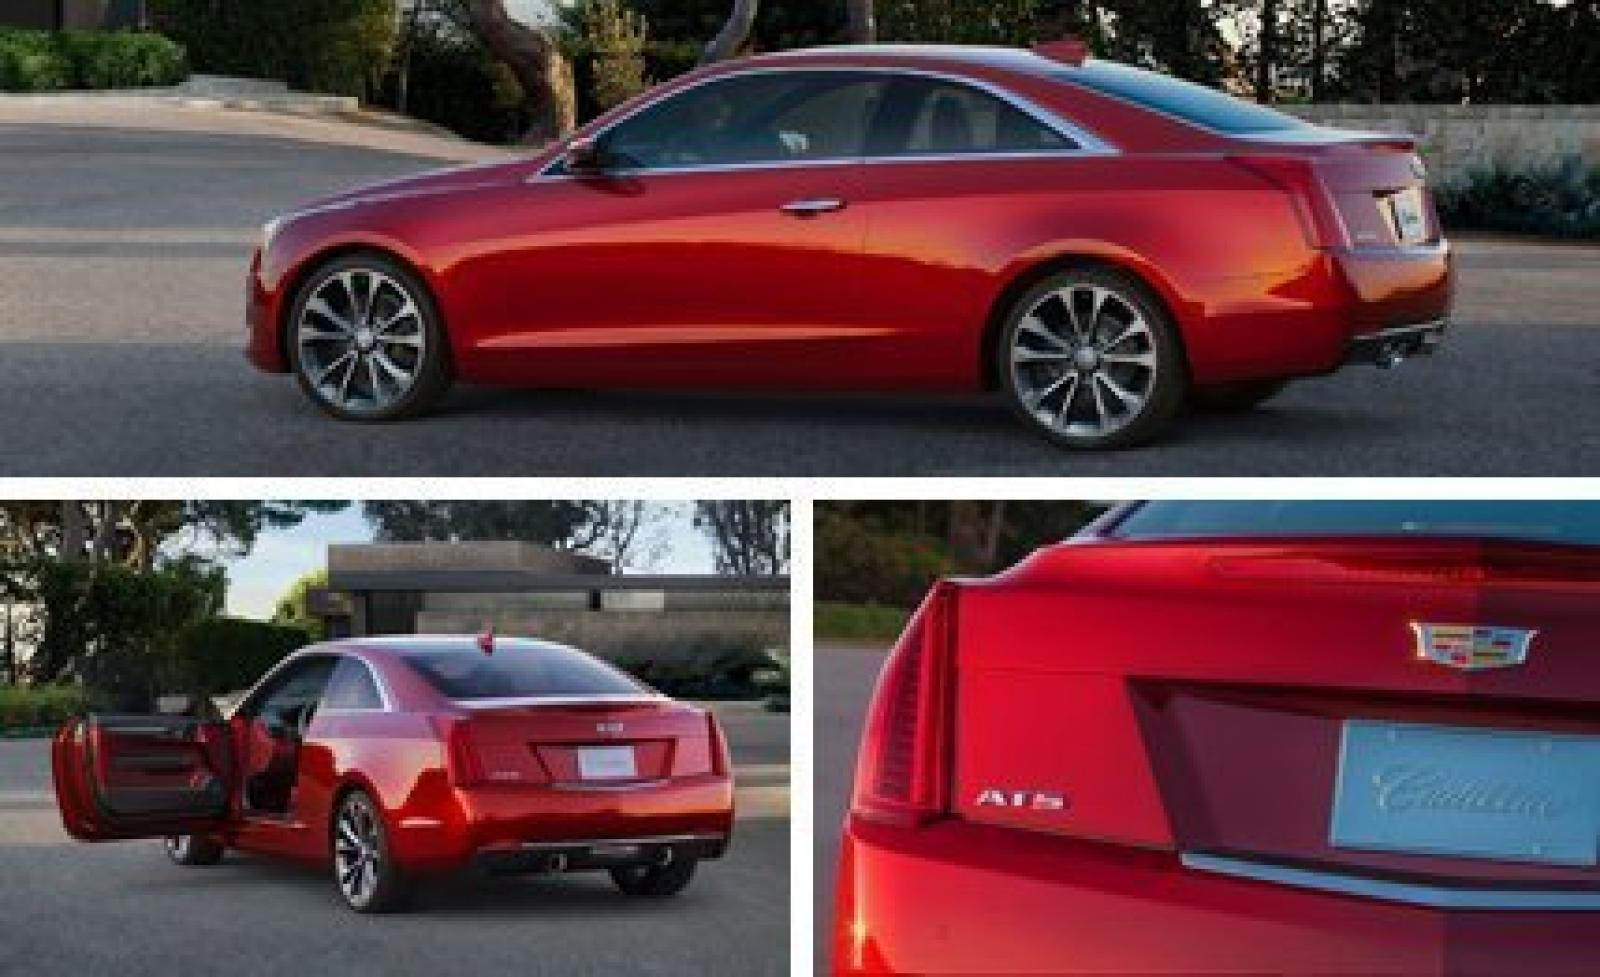 coupe front exclusive exterior ats pictures videos images and cadillac view updates gallery photos cars